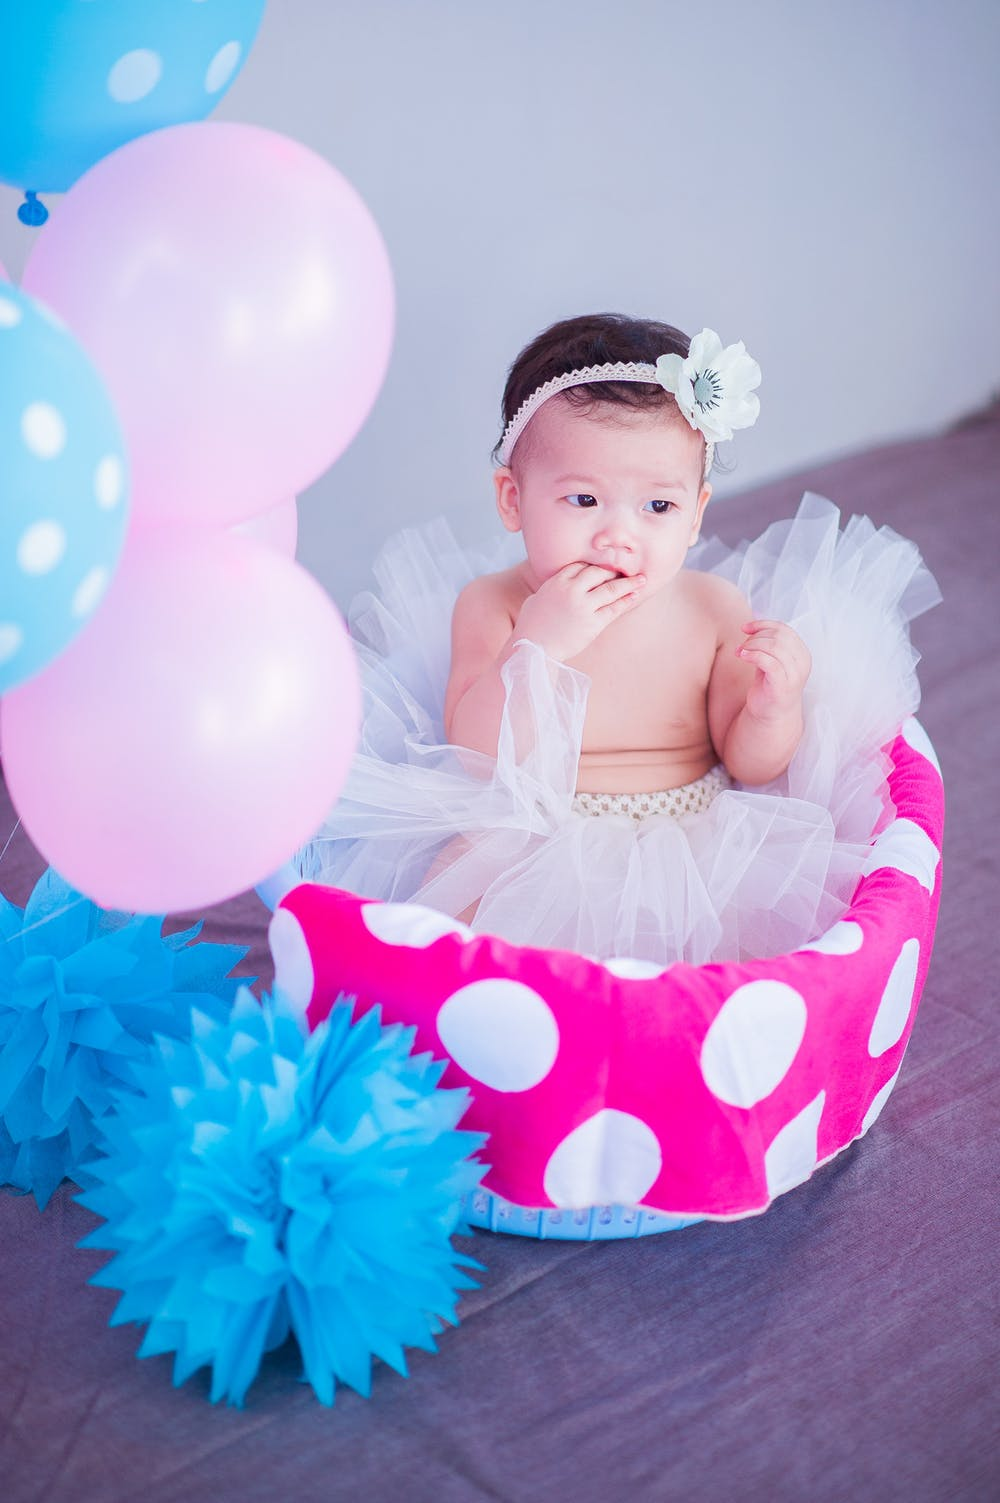 cute baby in a pink design baby hamper